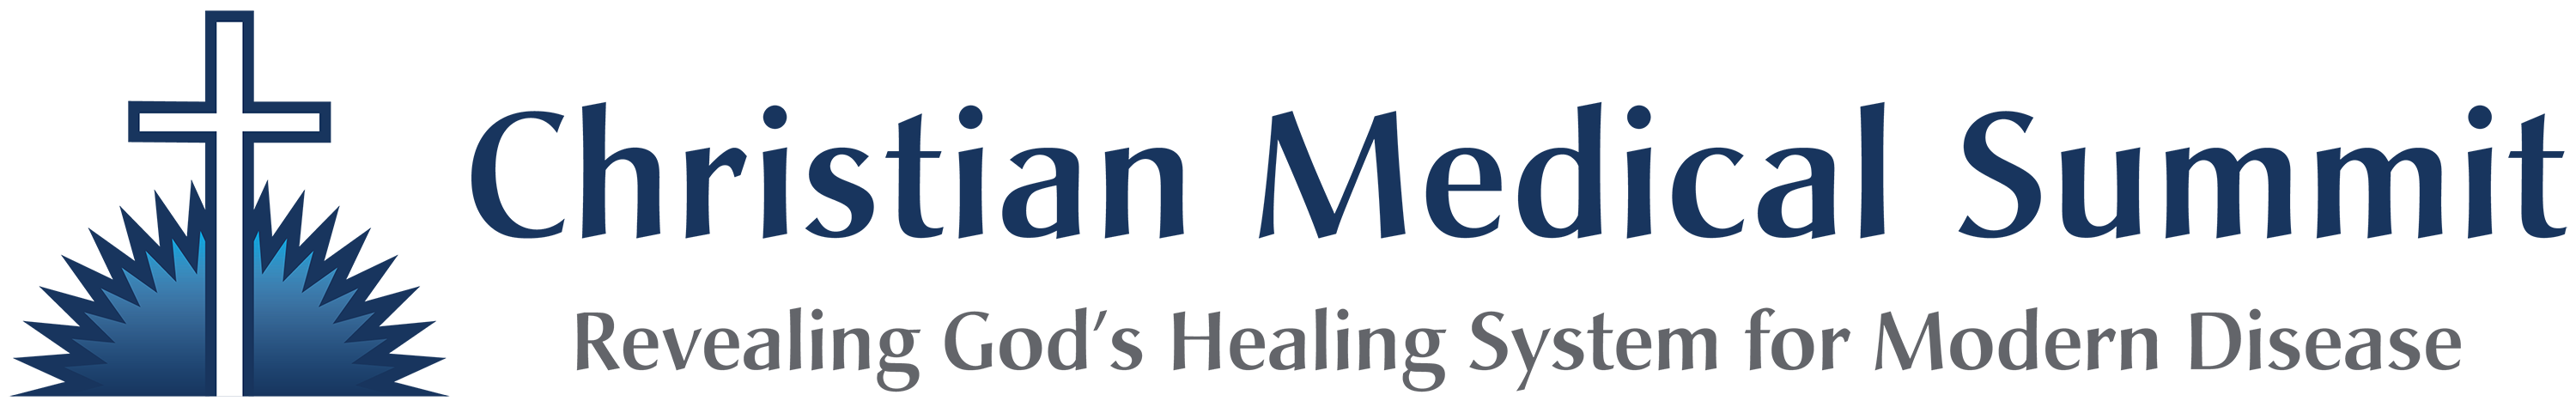 Christian Medical Summit